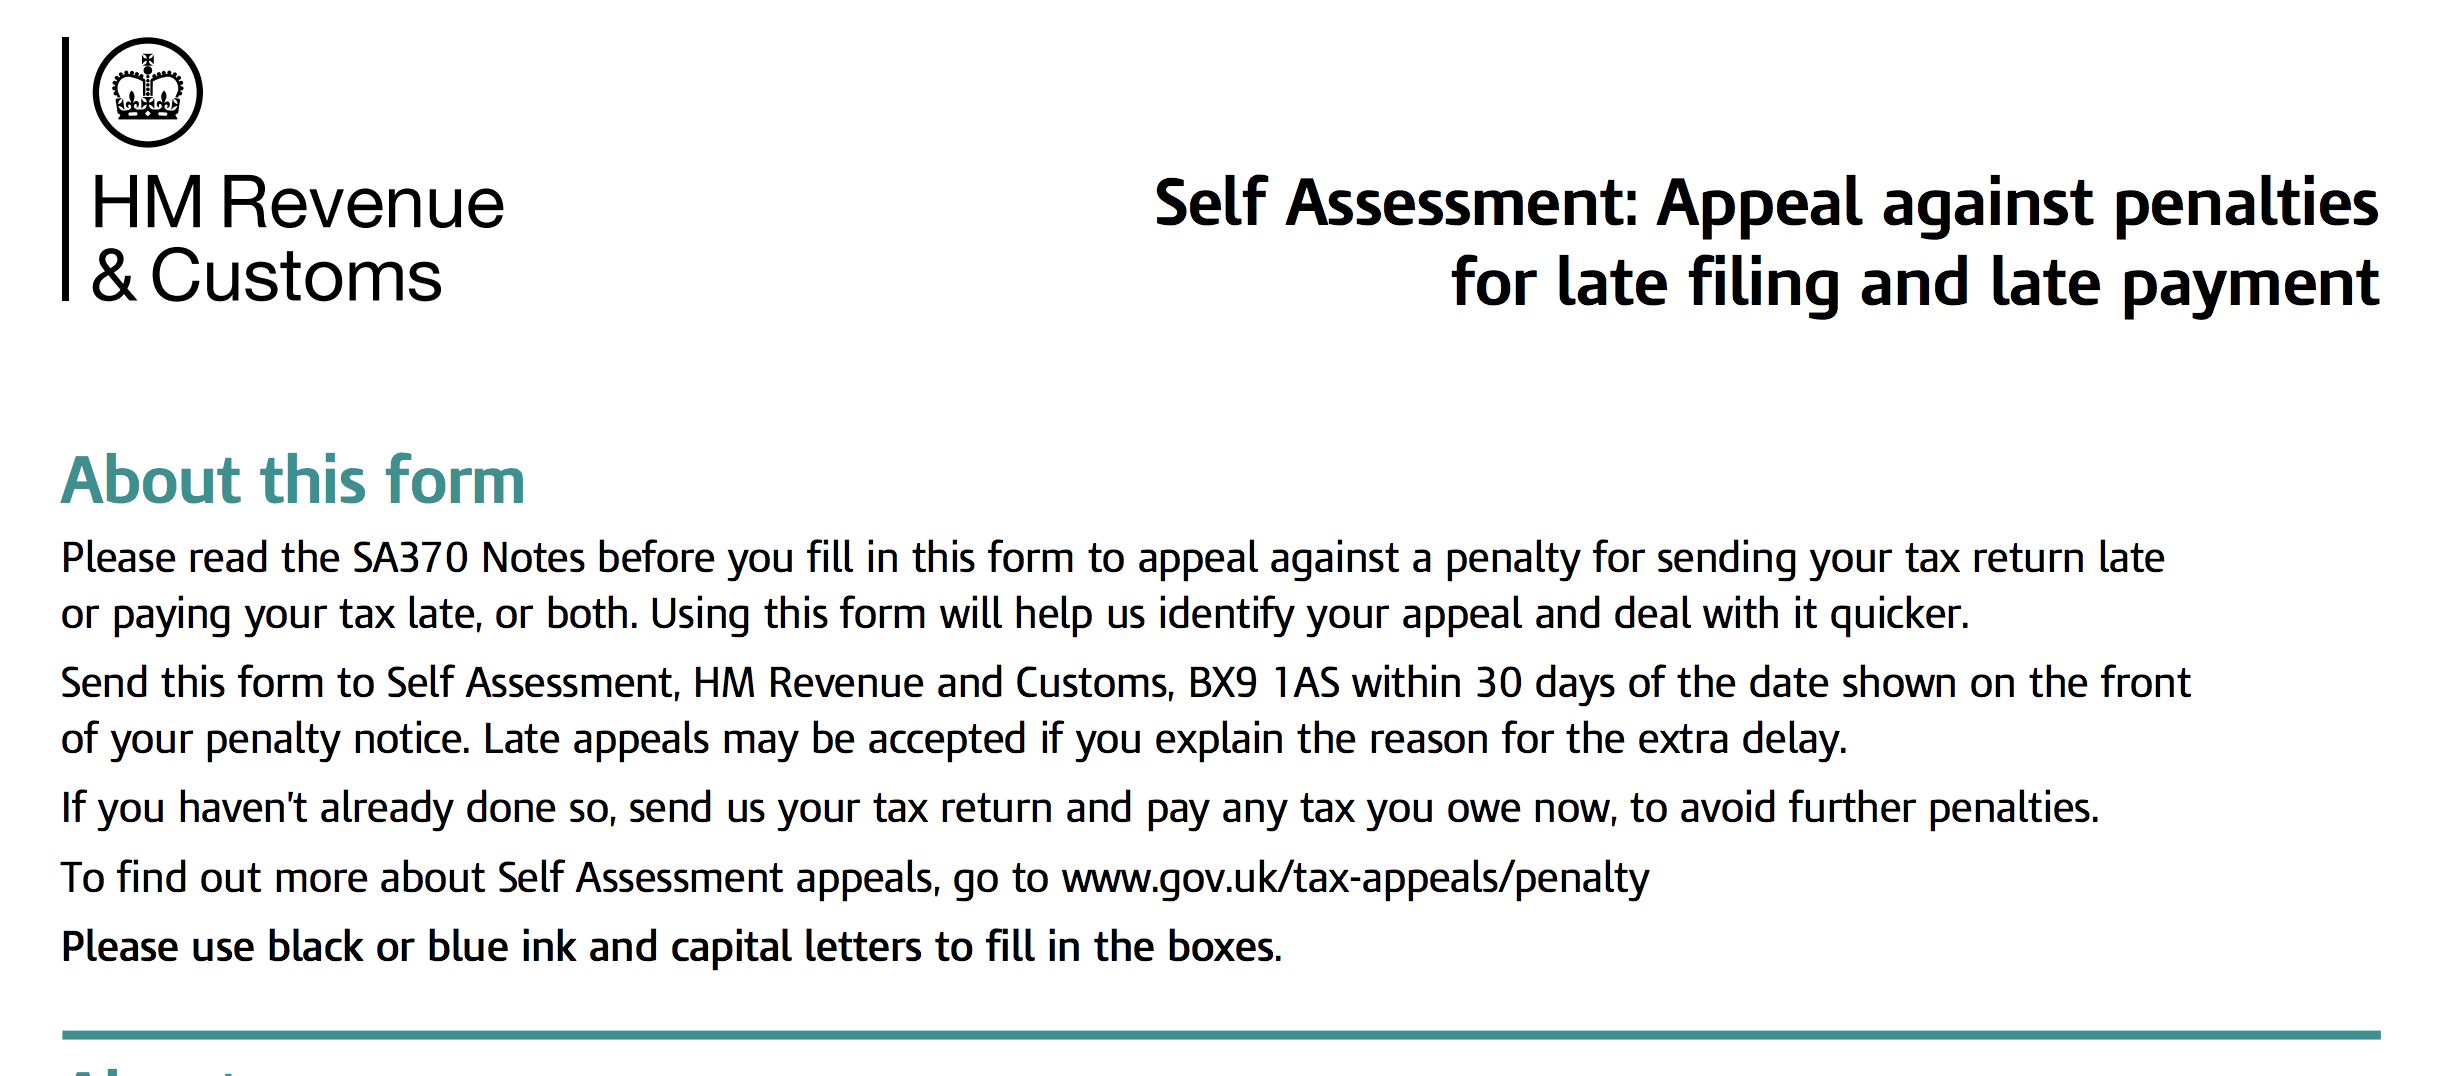 How to Appeal an HMRC Self-Assessment Penalty